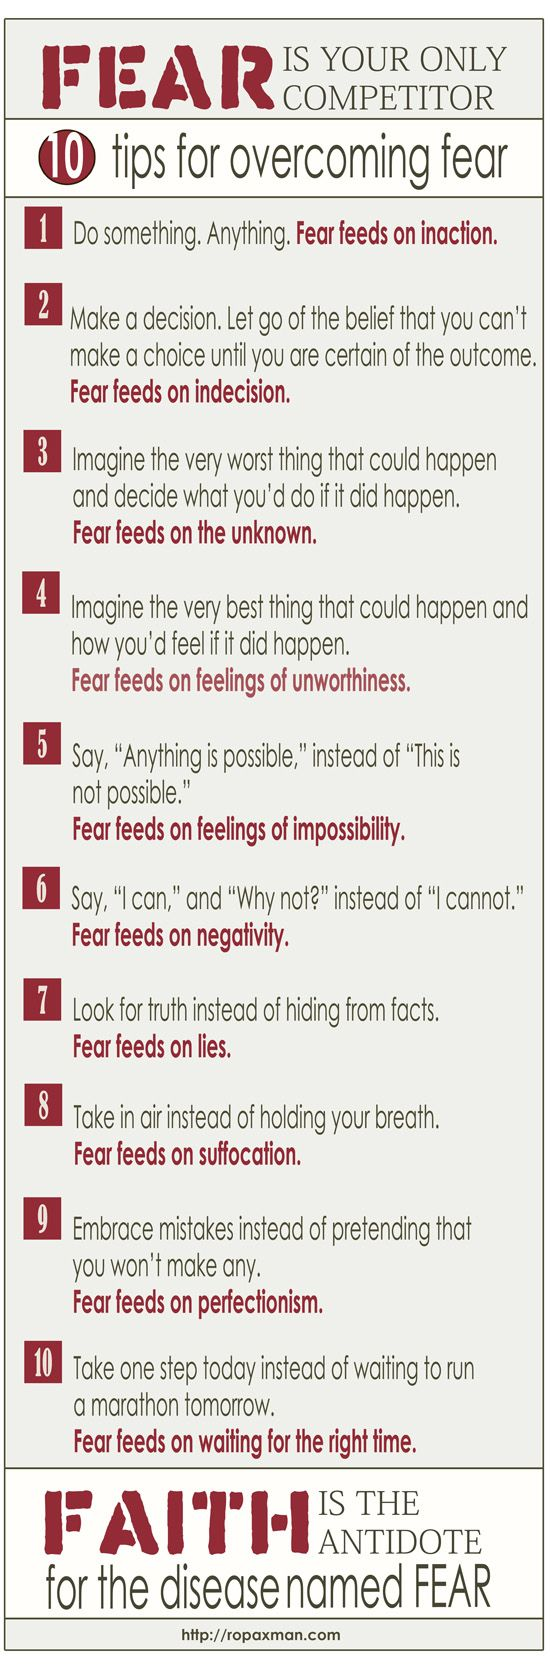 good-quotes-and-images-about-fear-fears-failure-failures-mistakes-and-facing-your-fears-in-life.